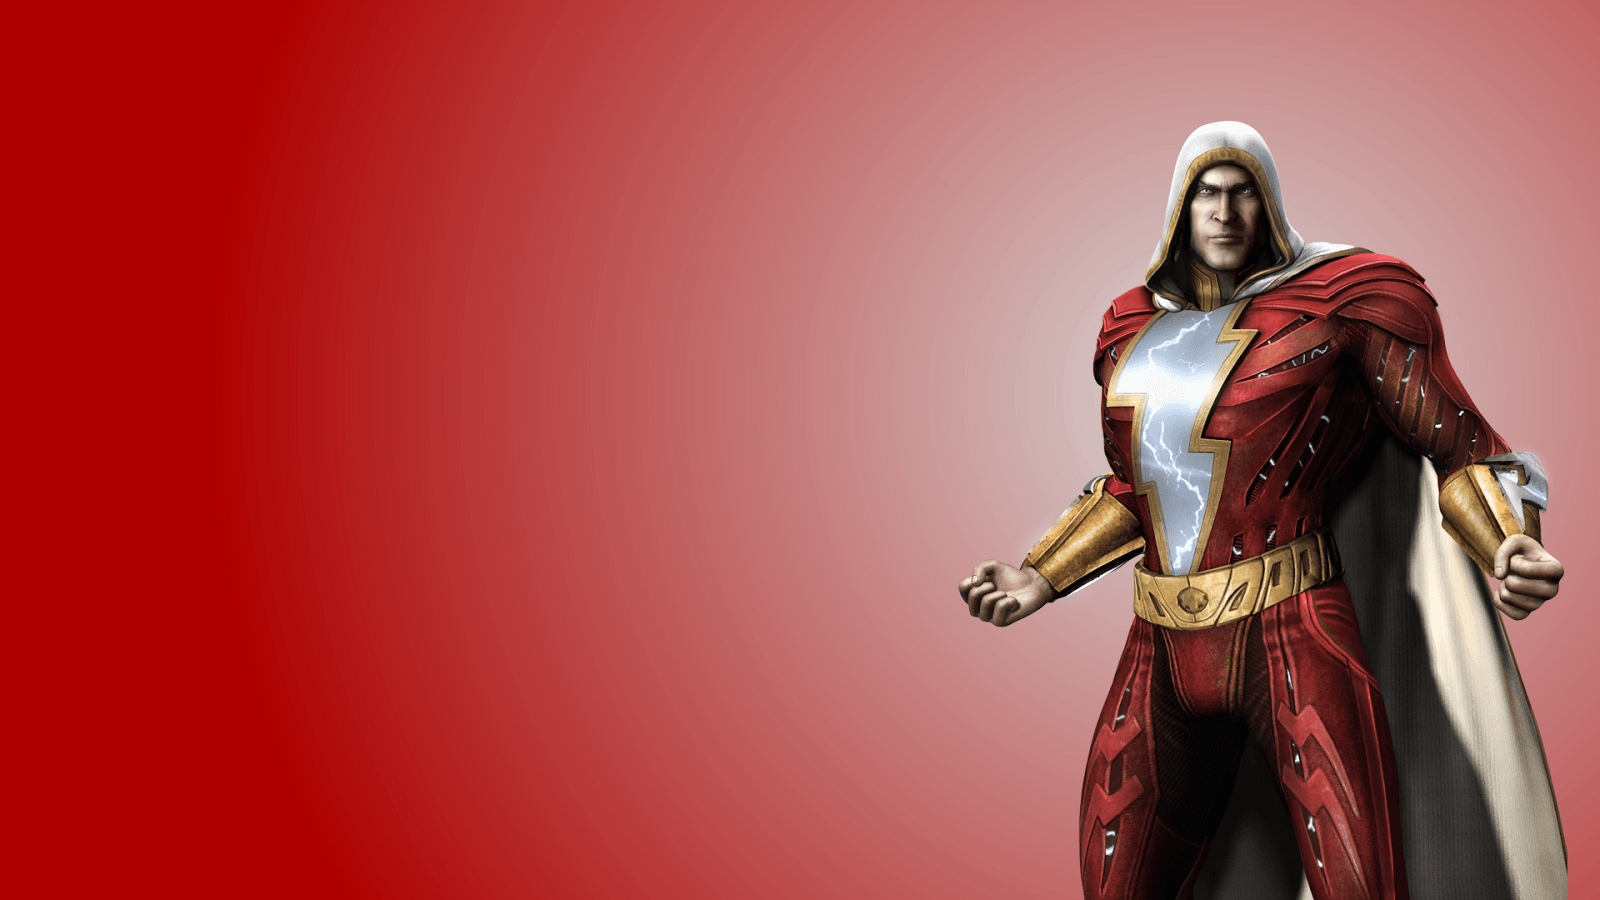 Shazam Wallpaper 8566 HD Desktop Backgrounds And Widescreen